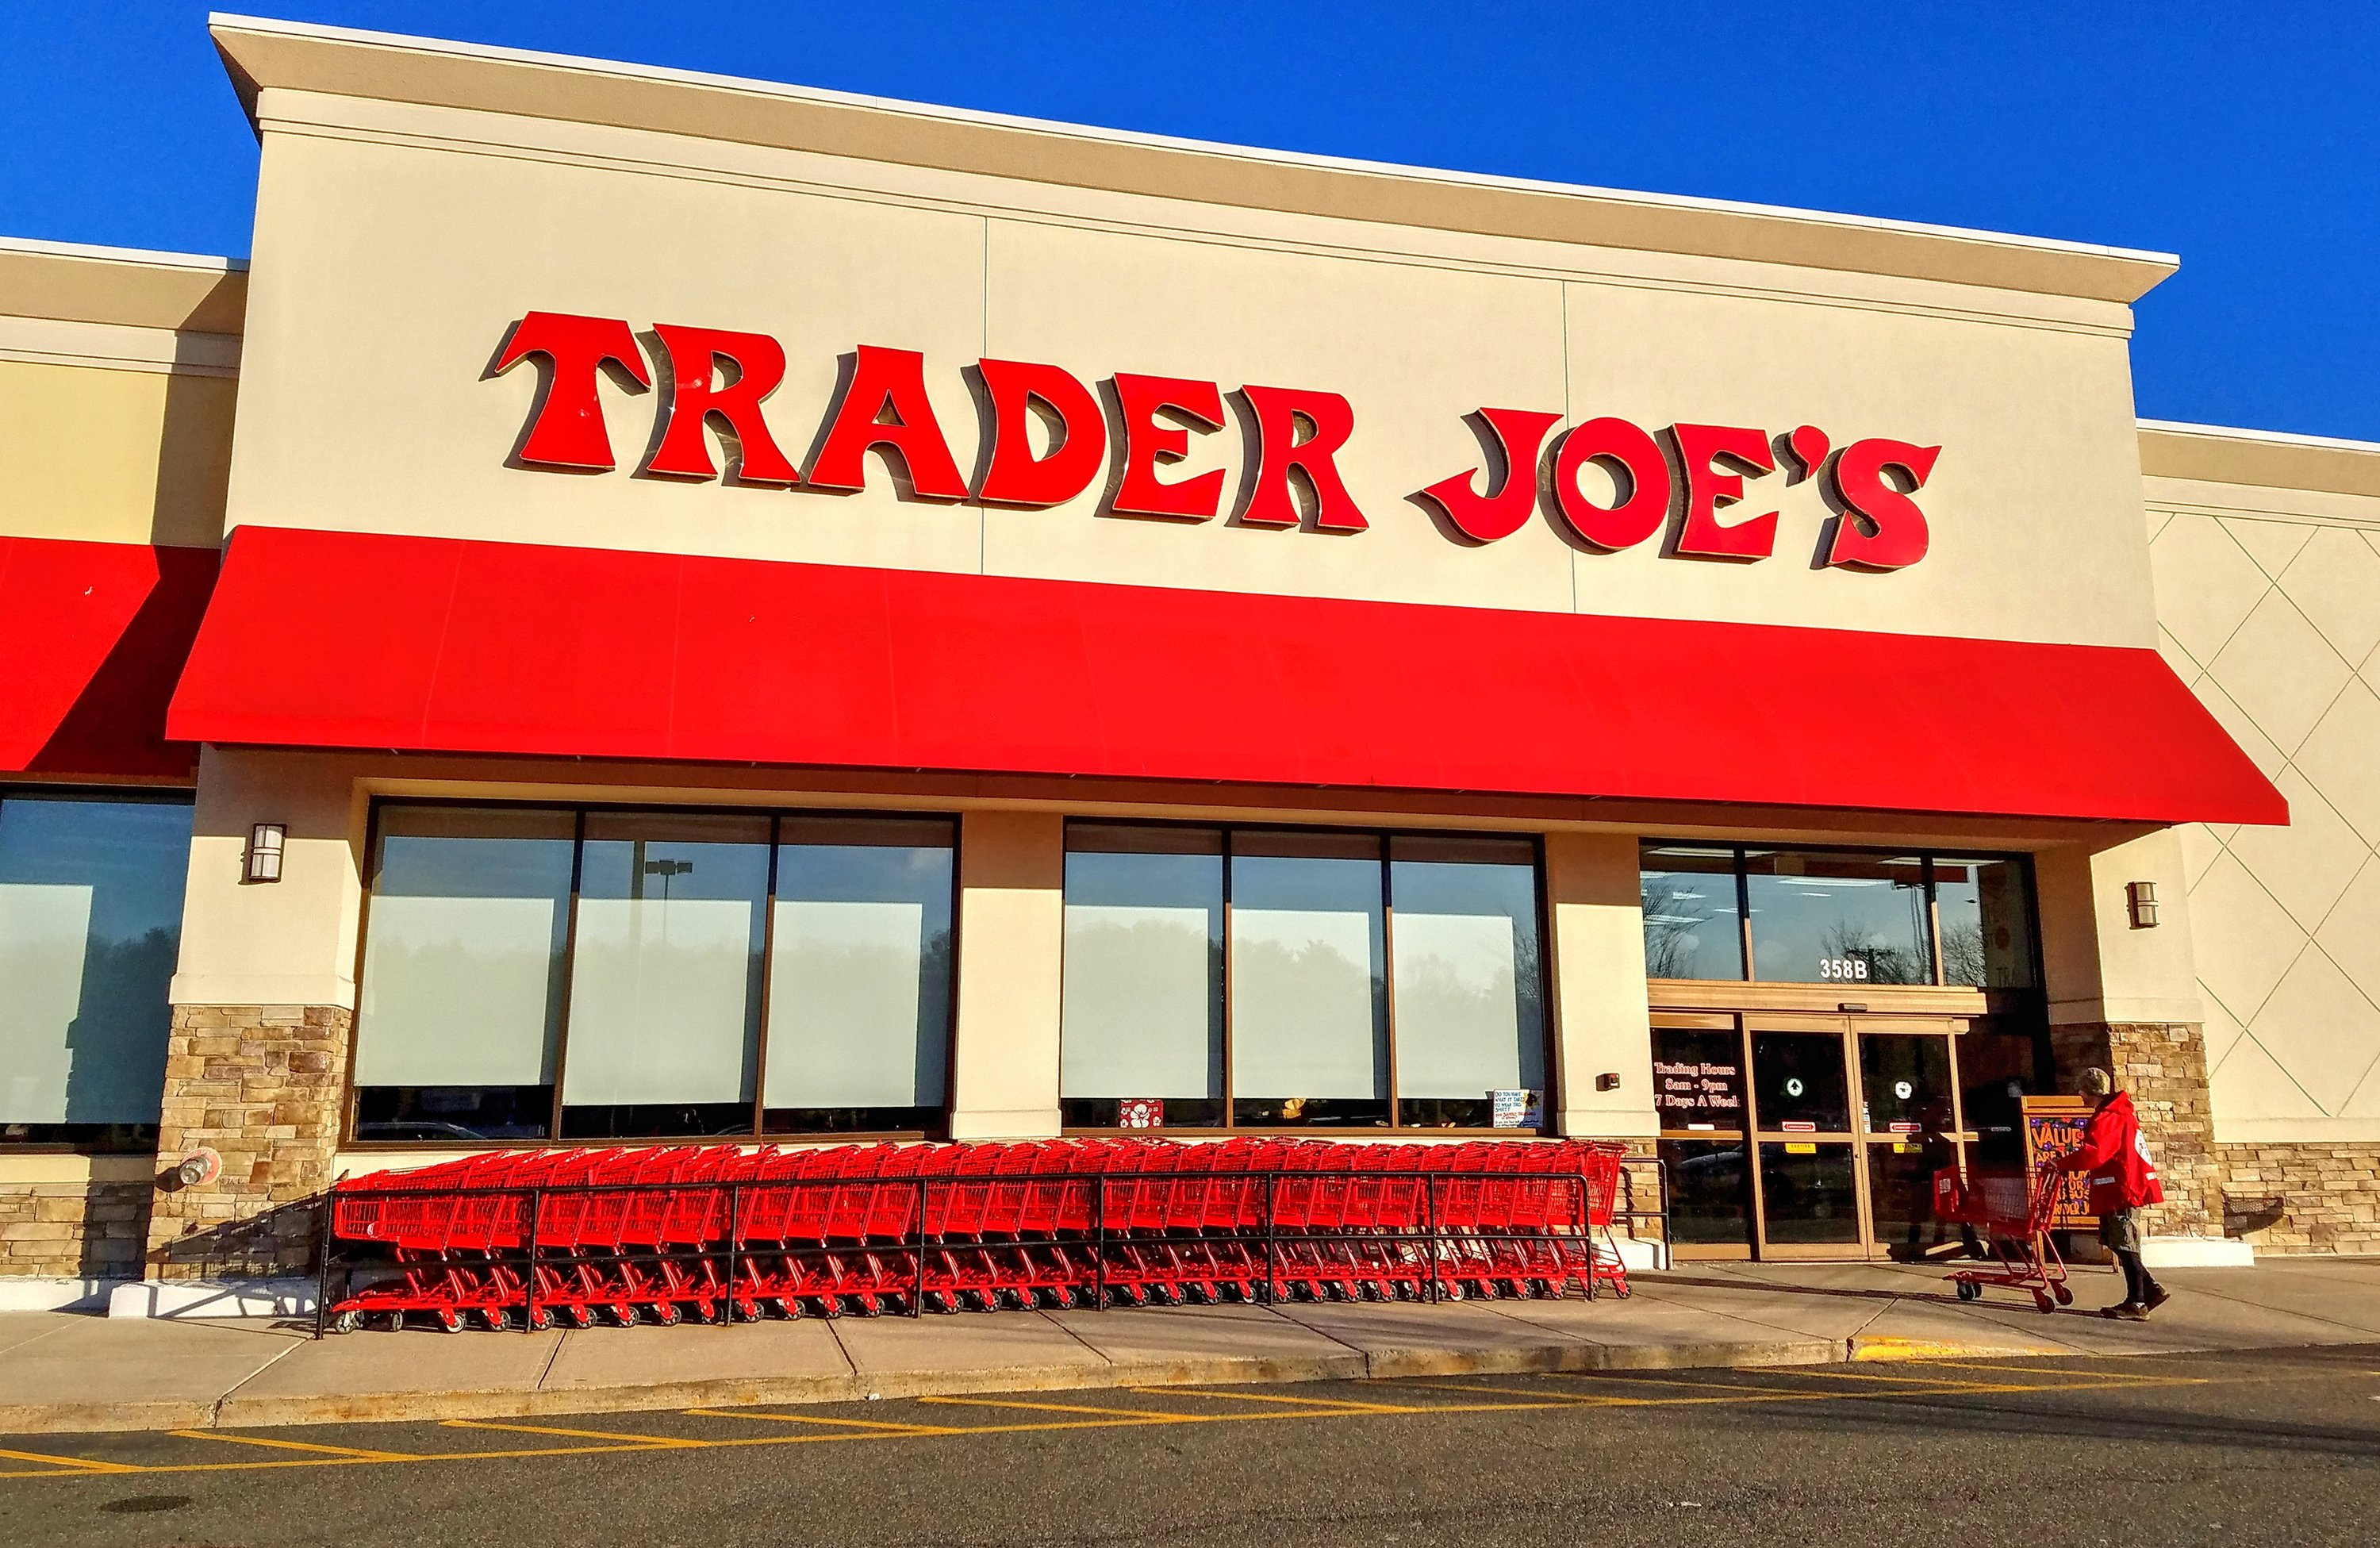 A customer with a shopping cart preparing to walk into a Trader Joe's store in Saugus, Massachusetts, on February 27, 2018 | Photo: Shutterstock